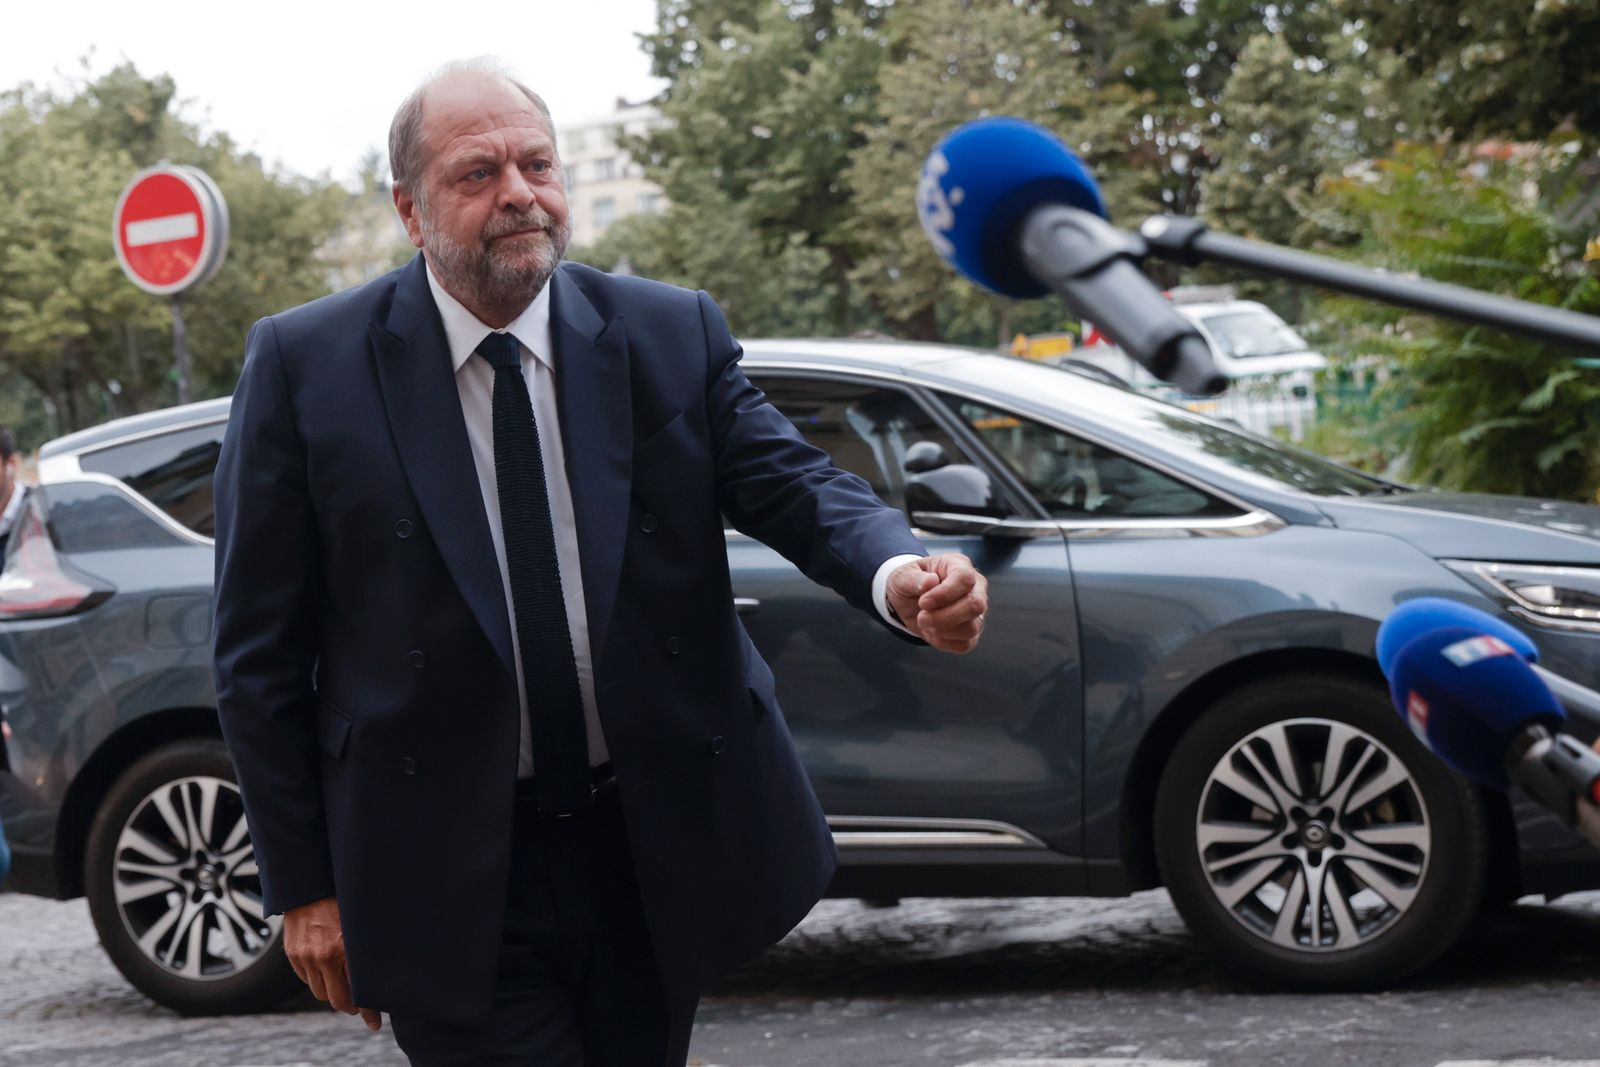 French Justice Minister Eric Dupond-Moretti at courthouse in Paris